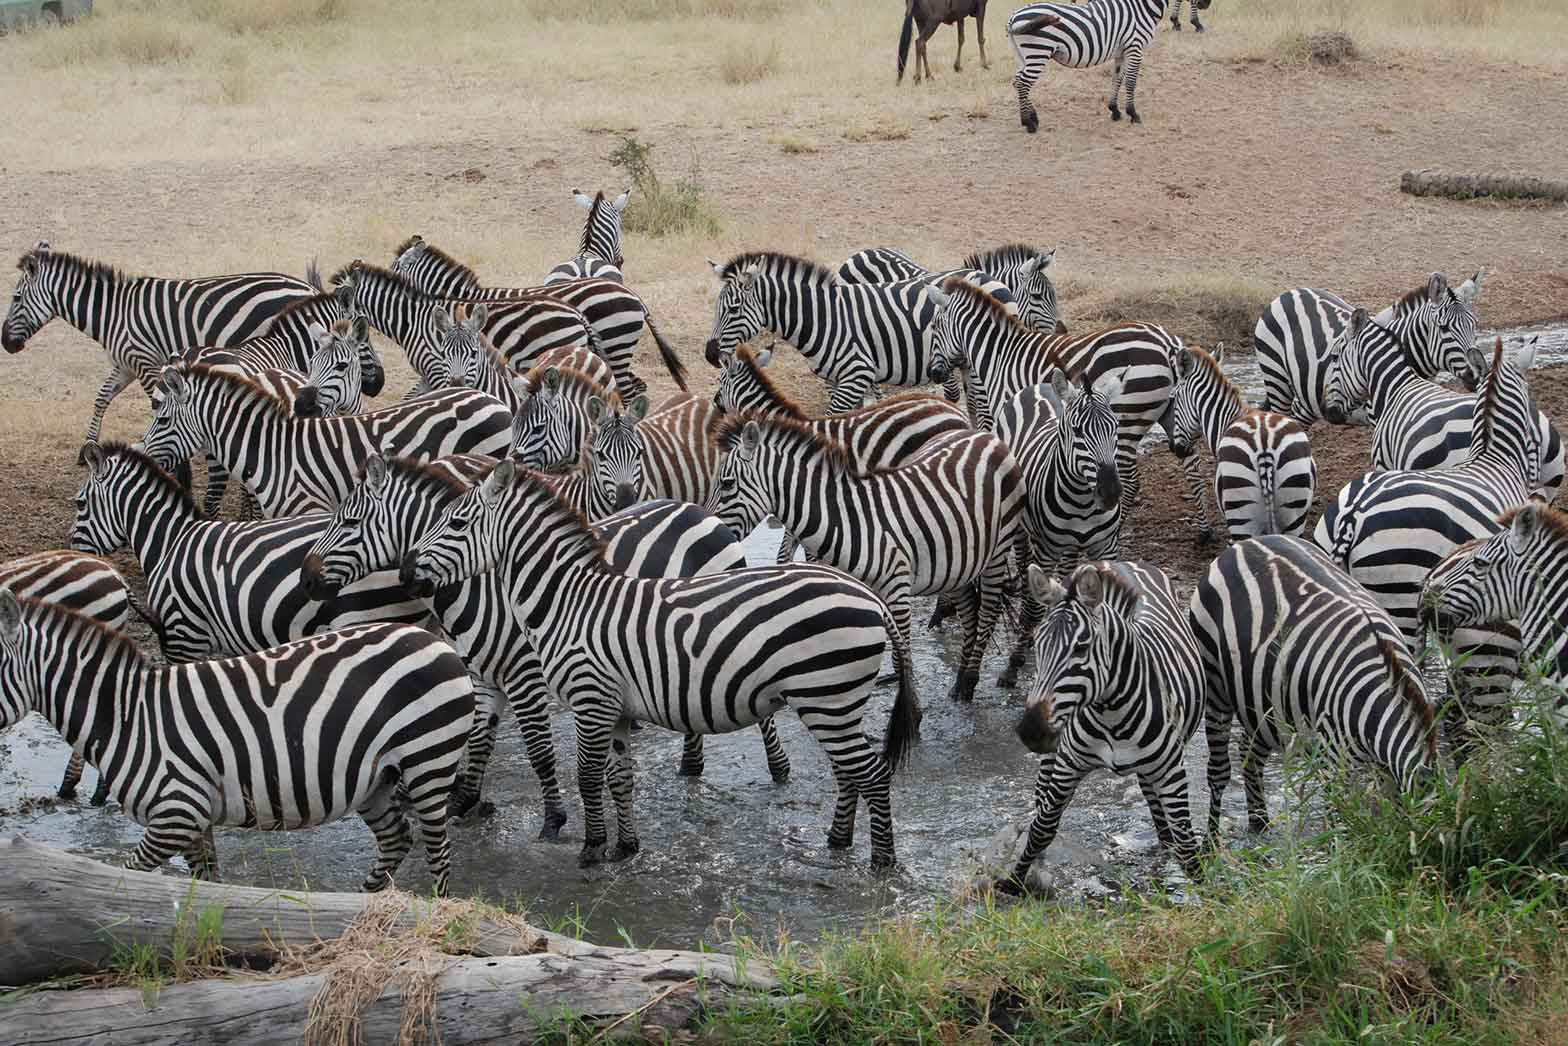 Zebra Watering Hold, The Serengeti